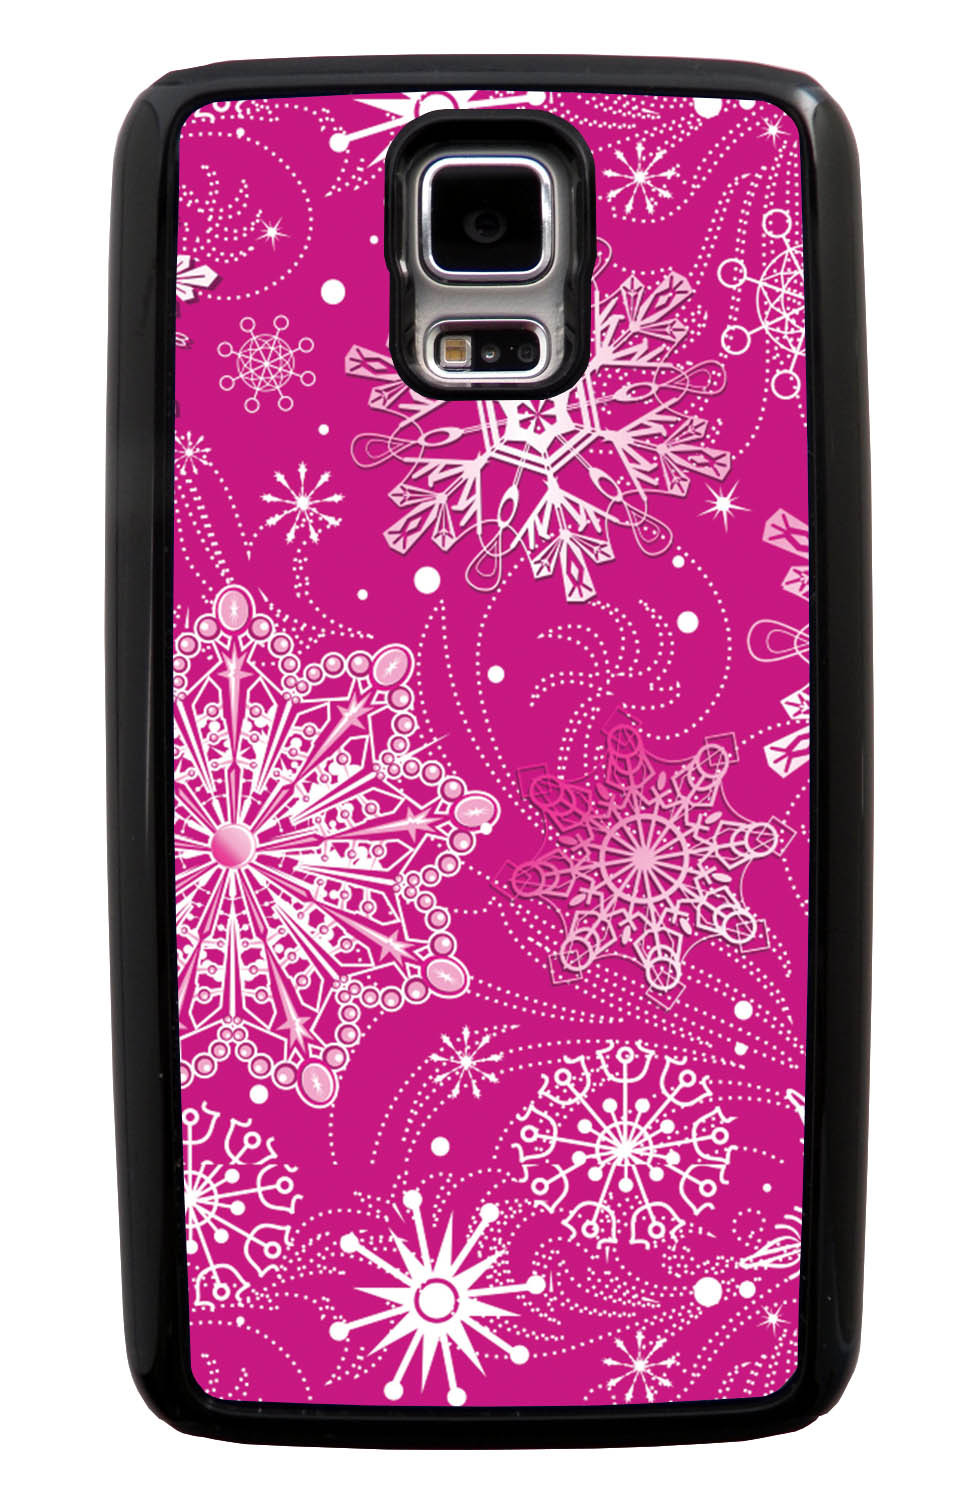 Samsung Galaxy S5 / SV Pink Case - White Snowflakes on Hot Pink - Fall And Winter - Black Tough Hybrid Case